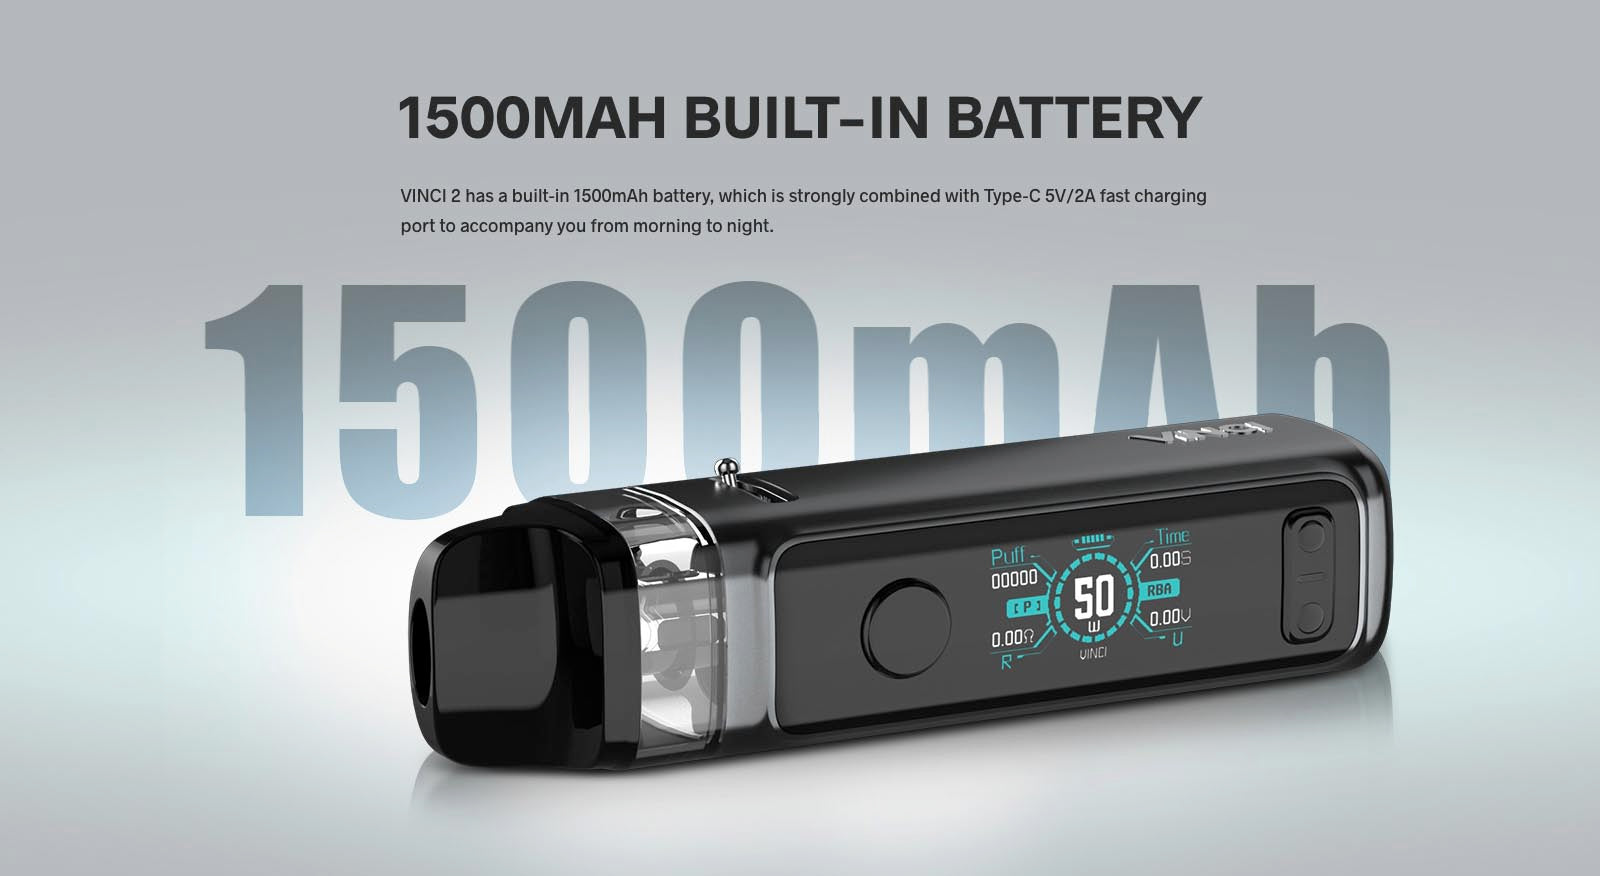 A 1500mAh battery with 2A charging provides enough power for all day vaping